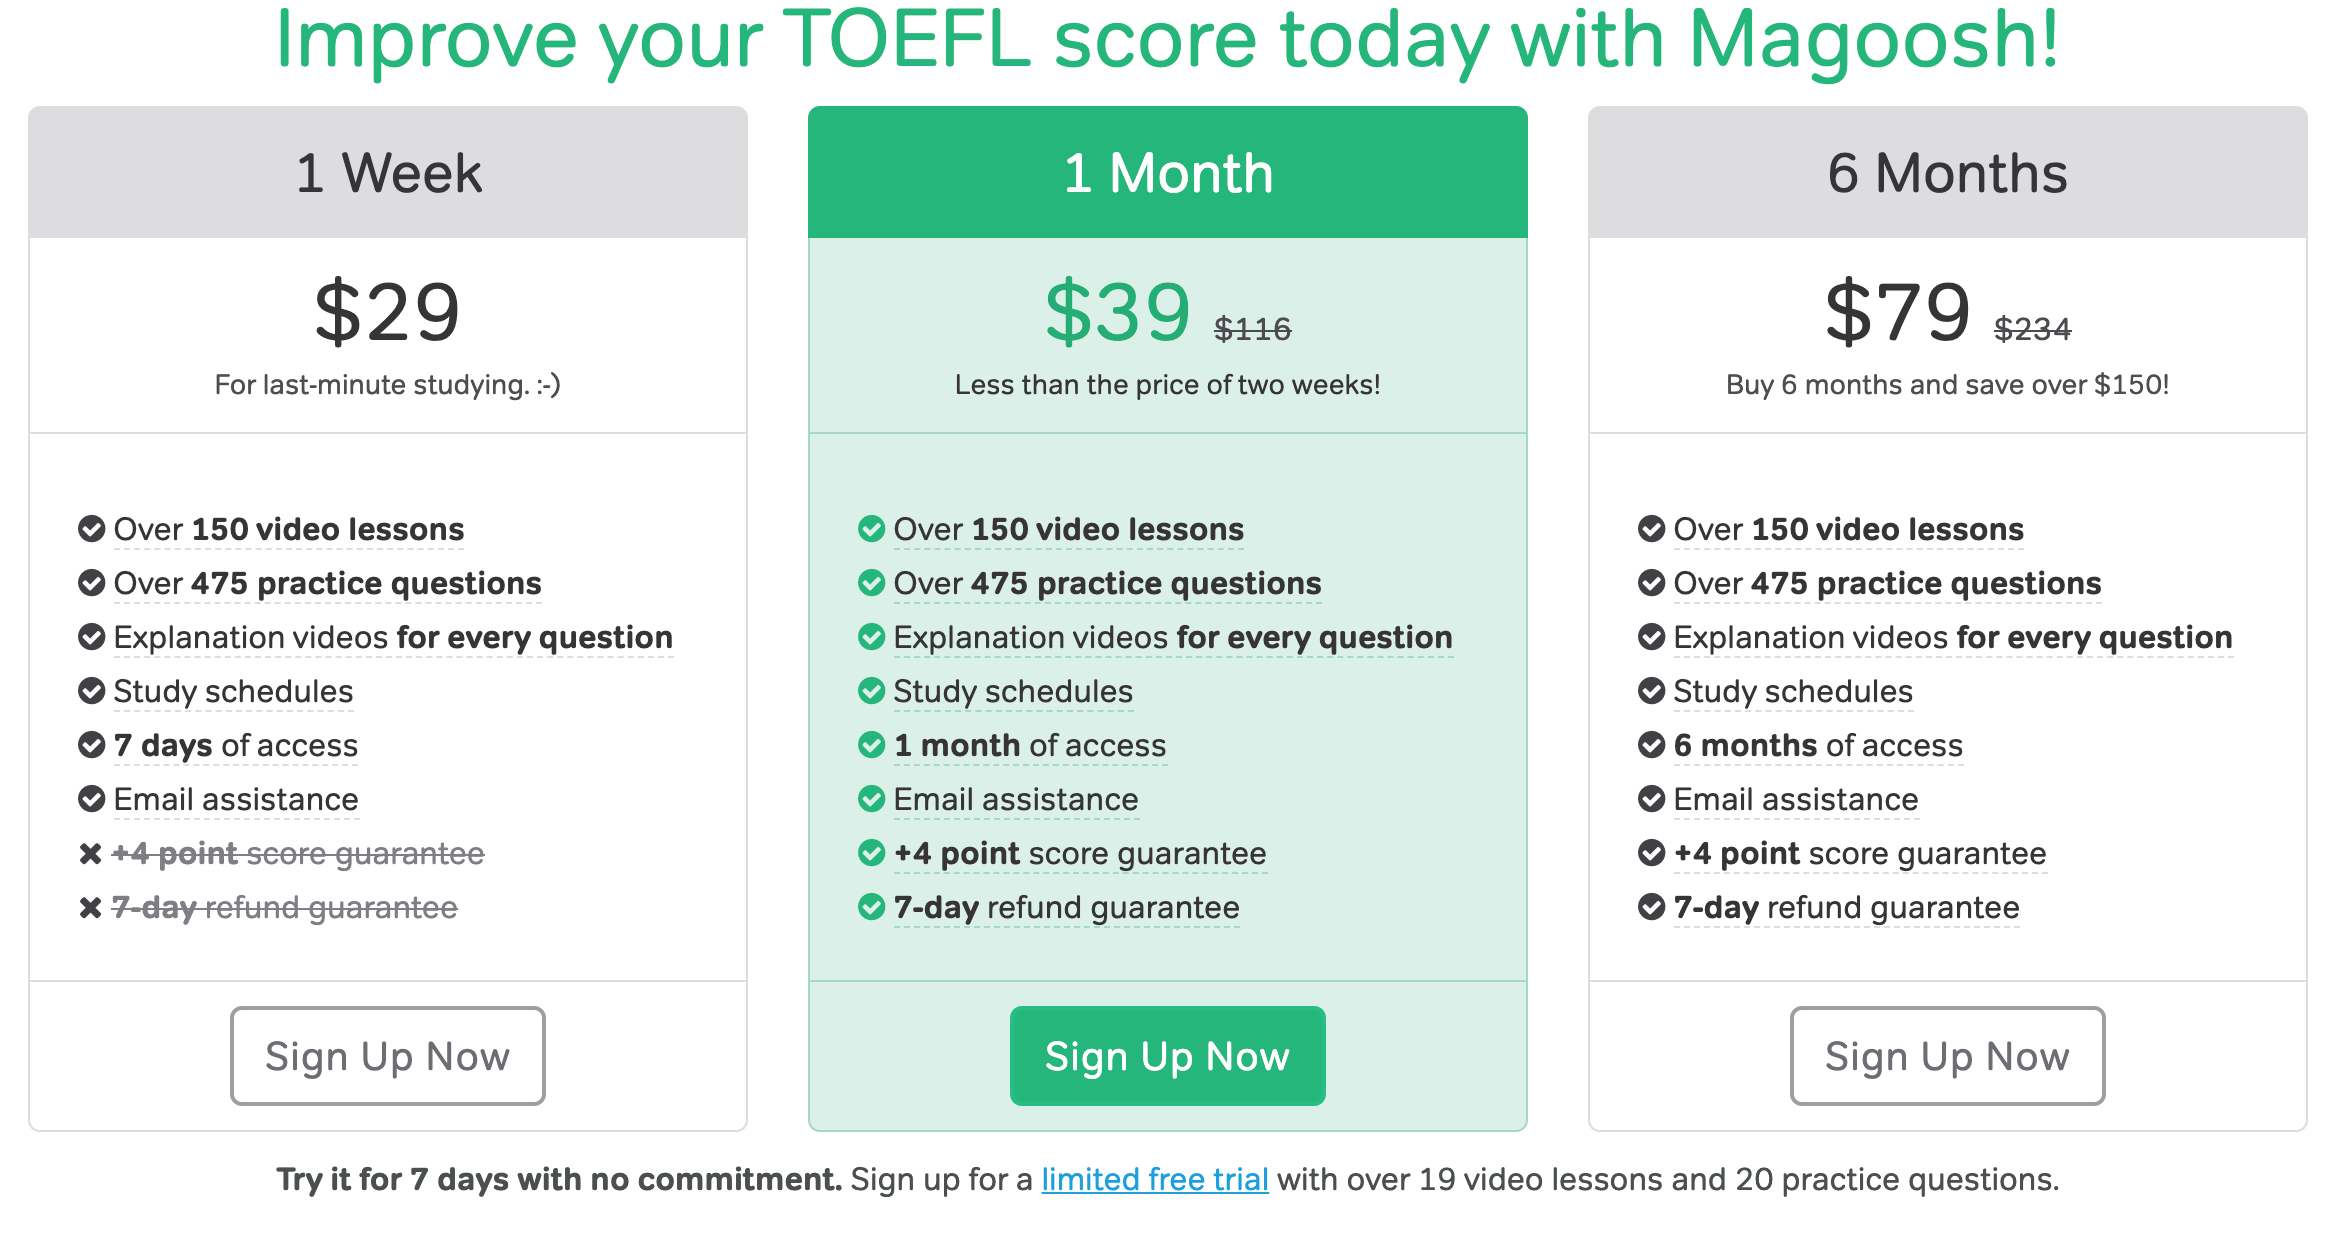 Magoosh TOEFL Pricing